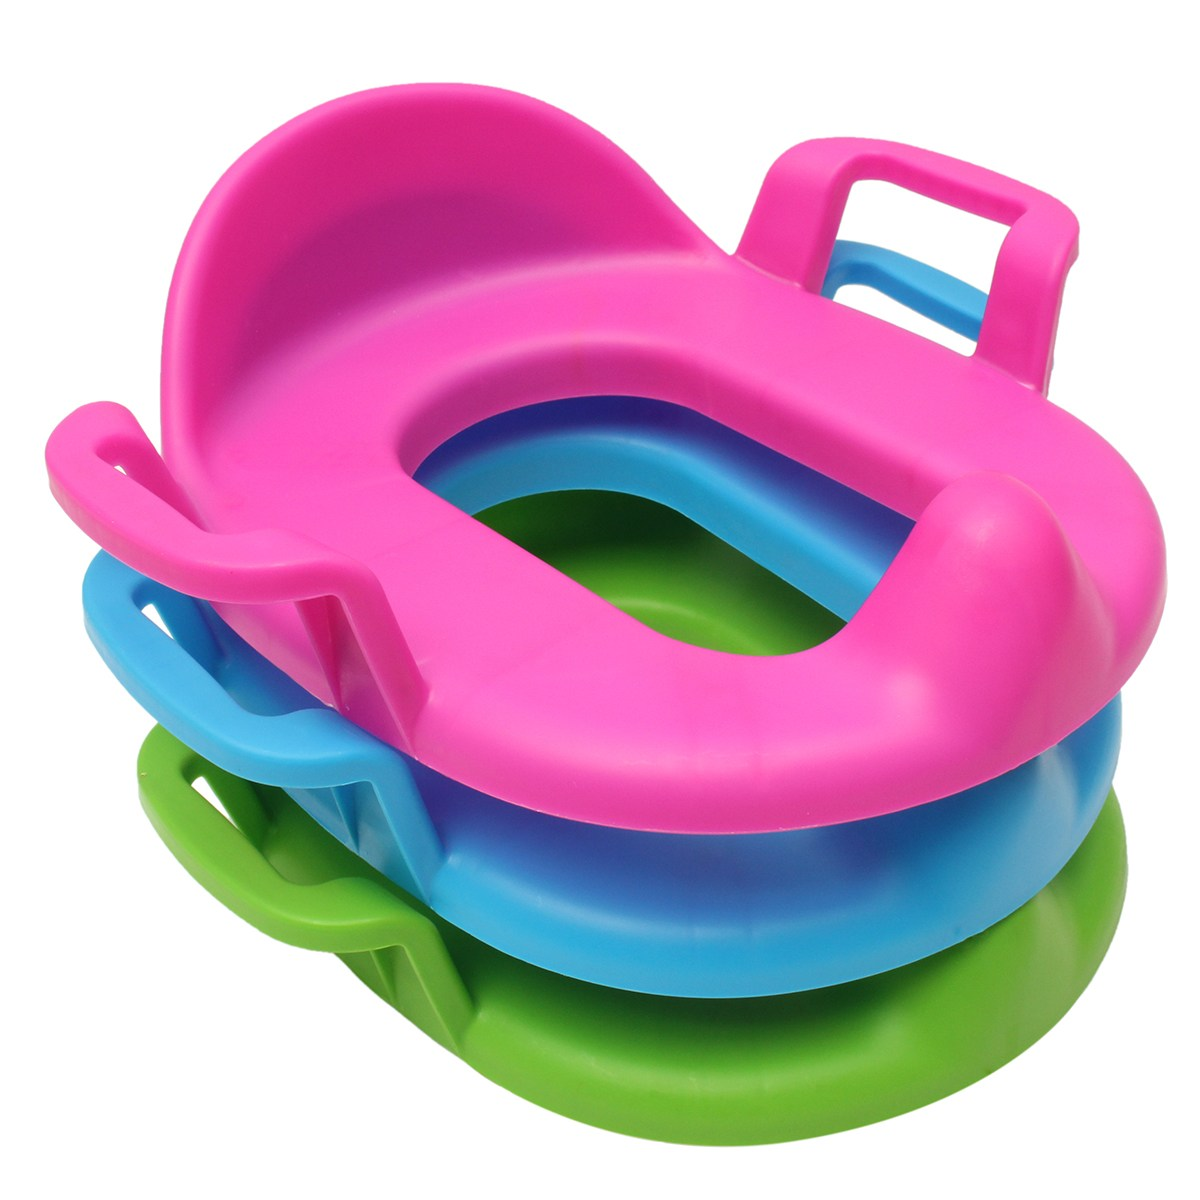 PP Soft size adjustable Easy Clean Baby children Toddler Training Urinal Baby Care Potties seat Pedestal